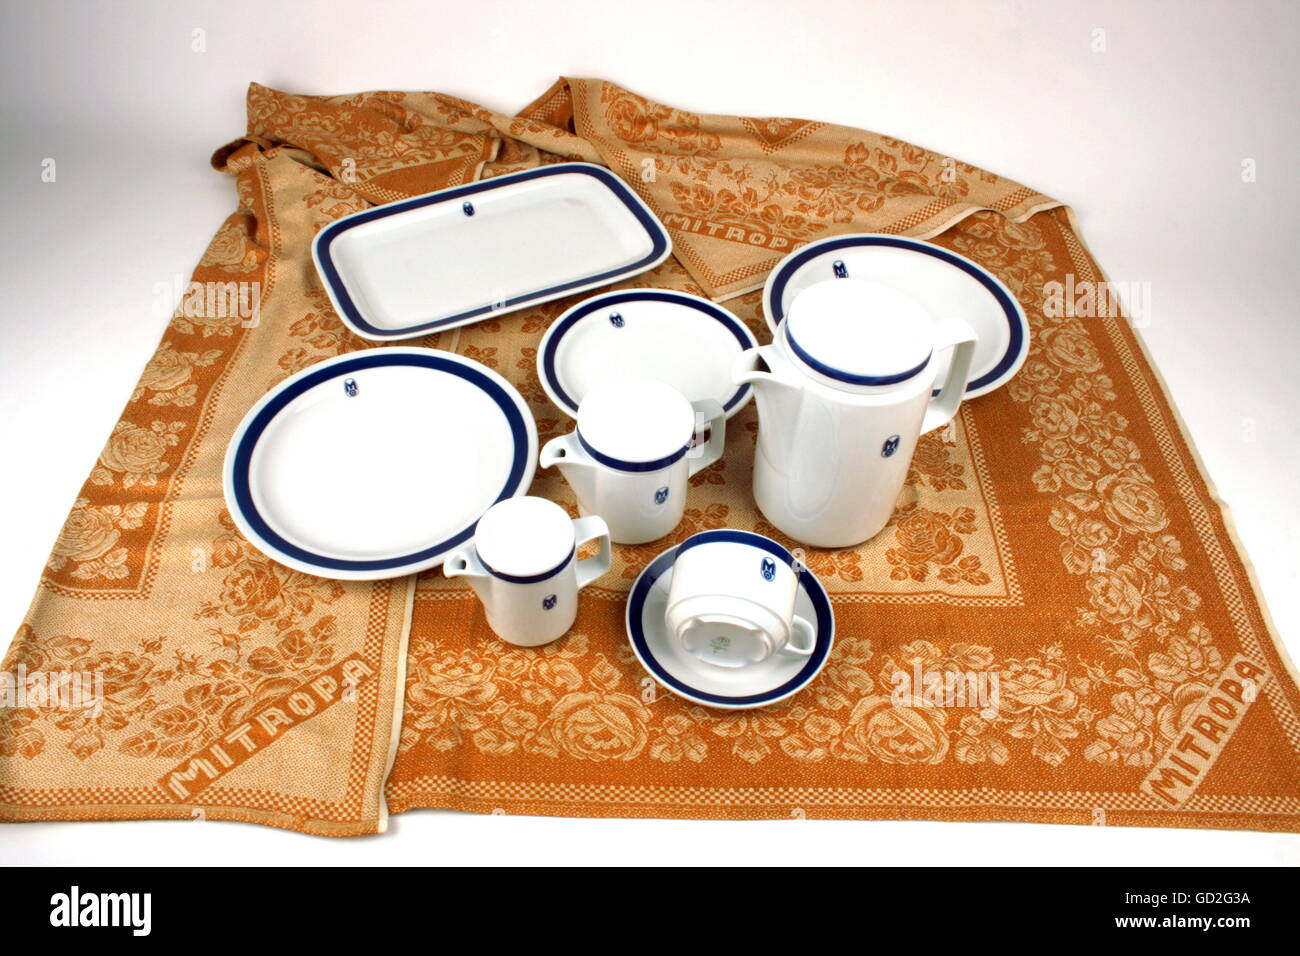 gastronomy, porcelain service 'Rationell', coffee set with Mitropa lettering (last decor version, 1980s), - Stock Image